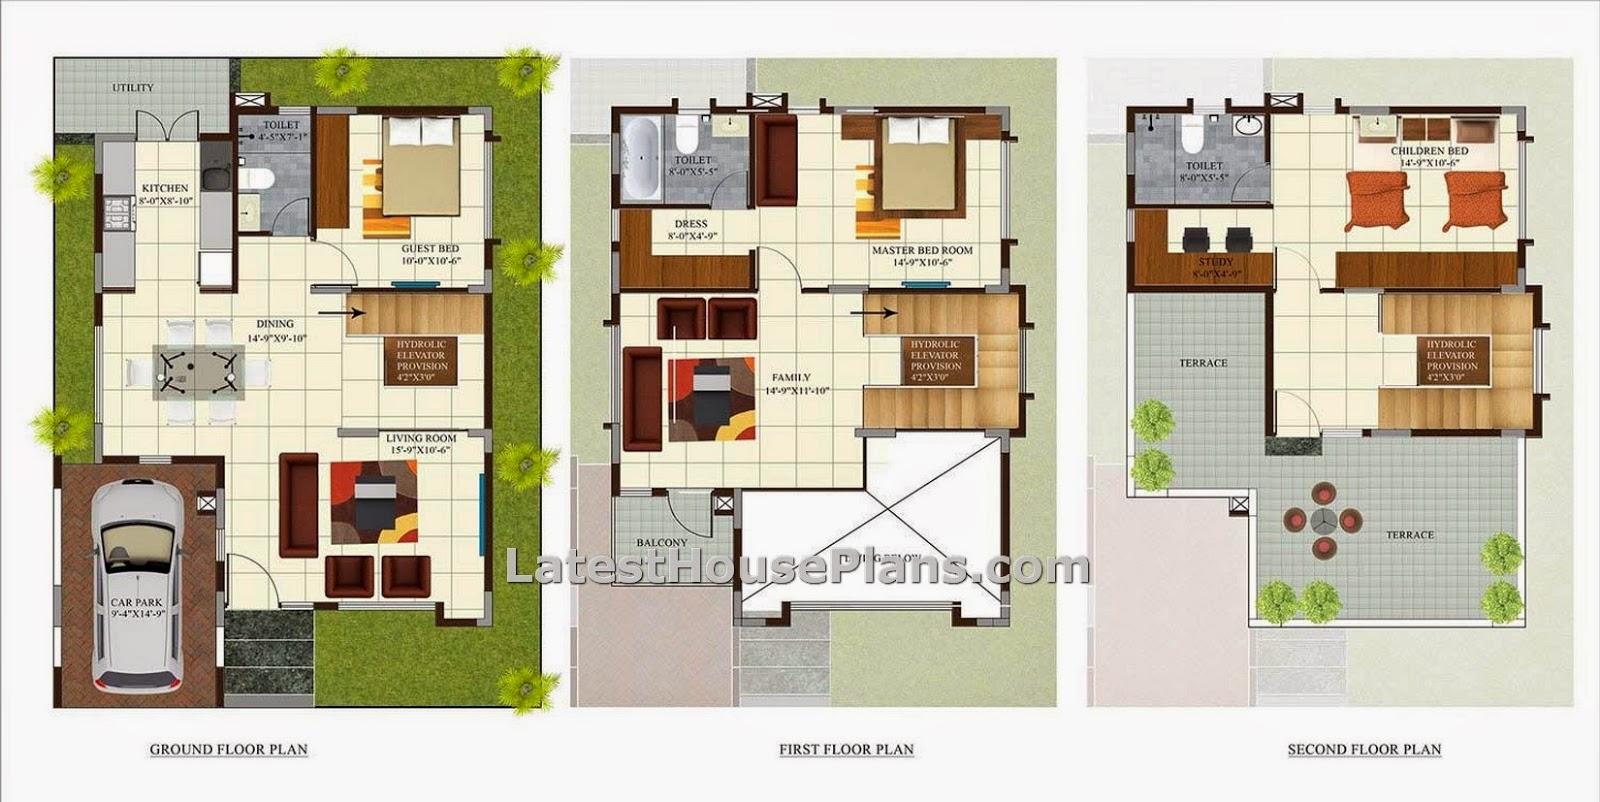 3 bedroom independant villa in 2100 sqft house plan 5 bhk duplex floor plan